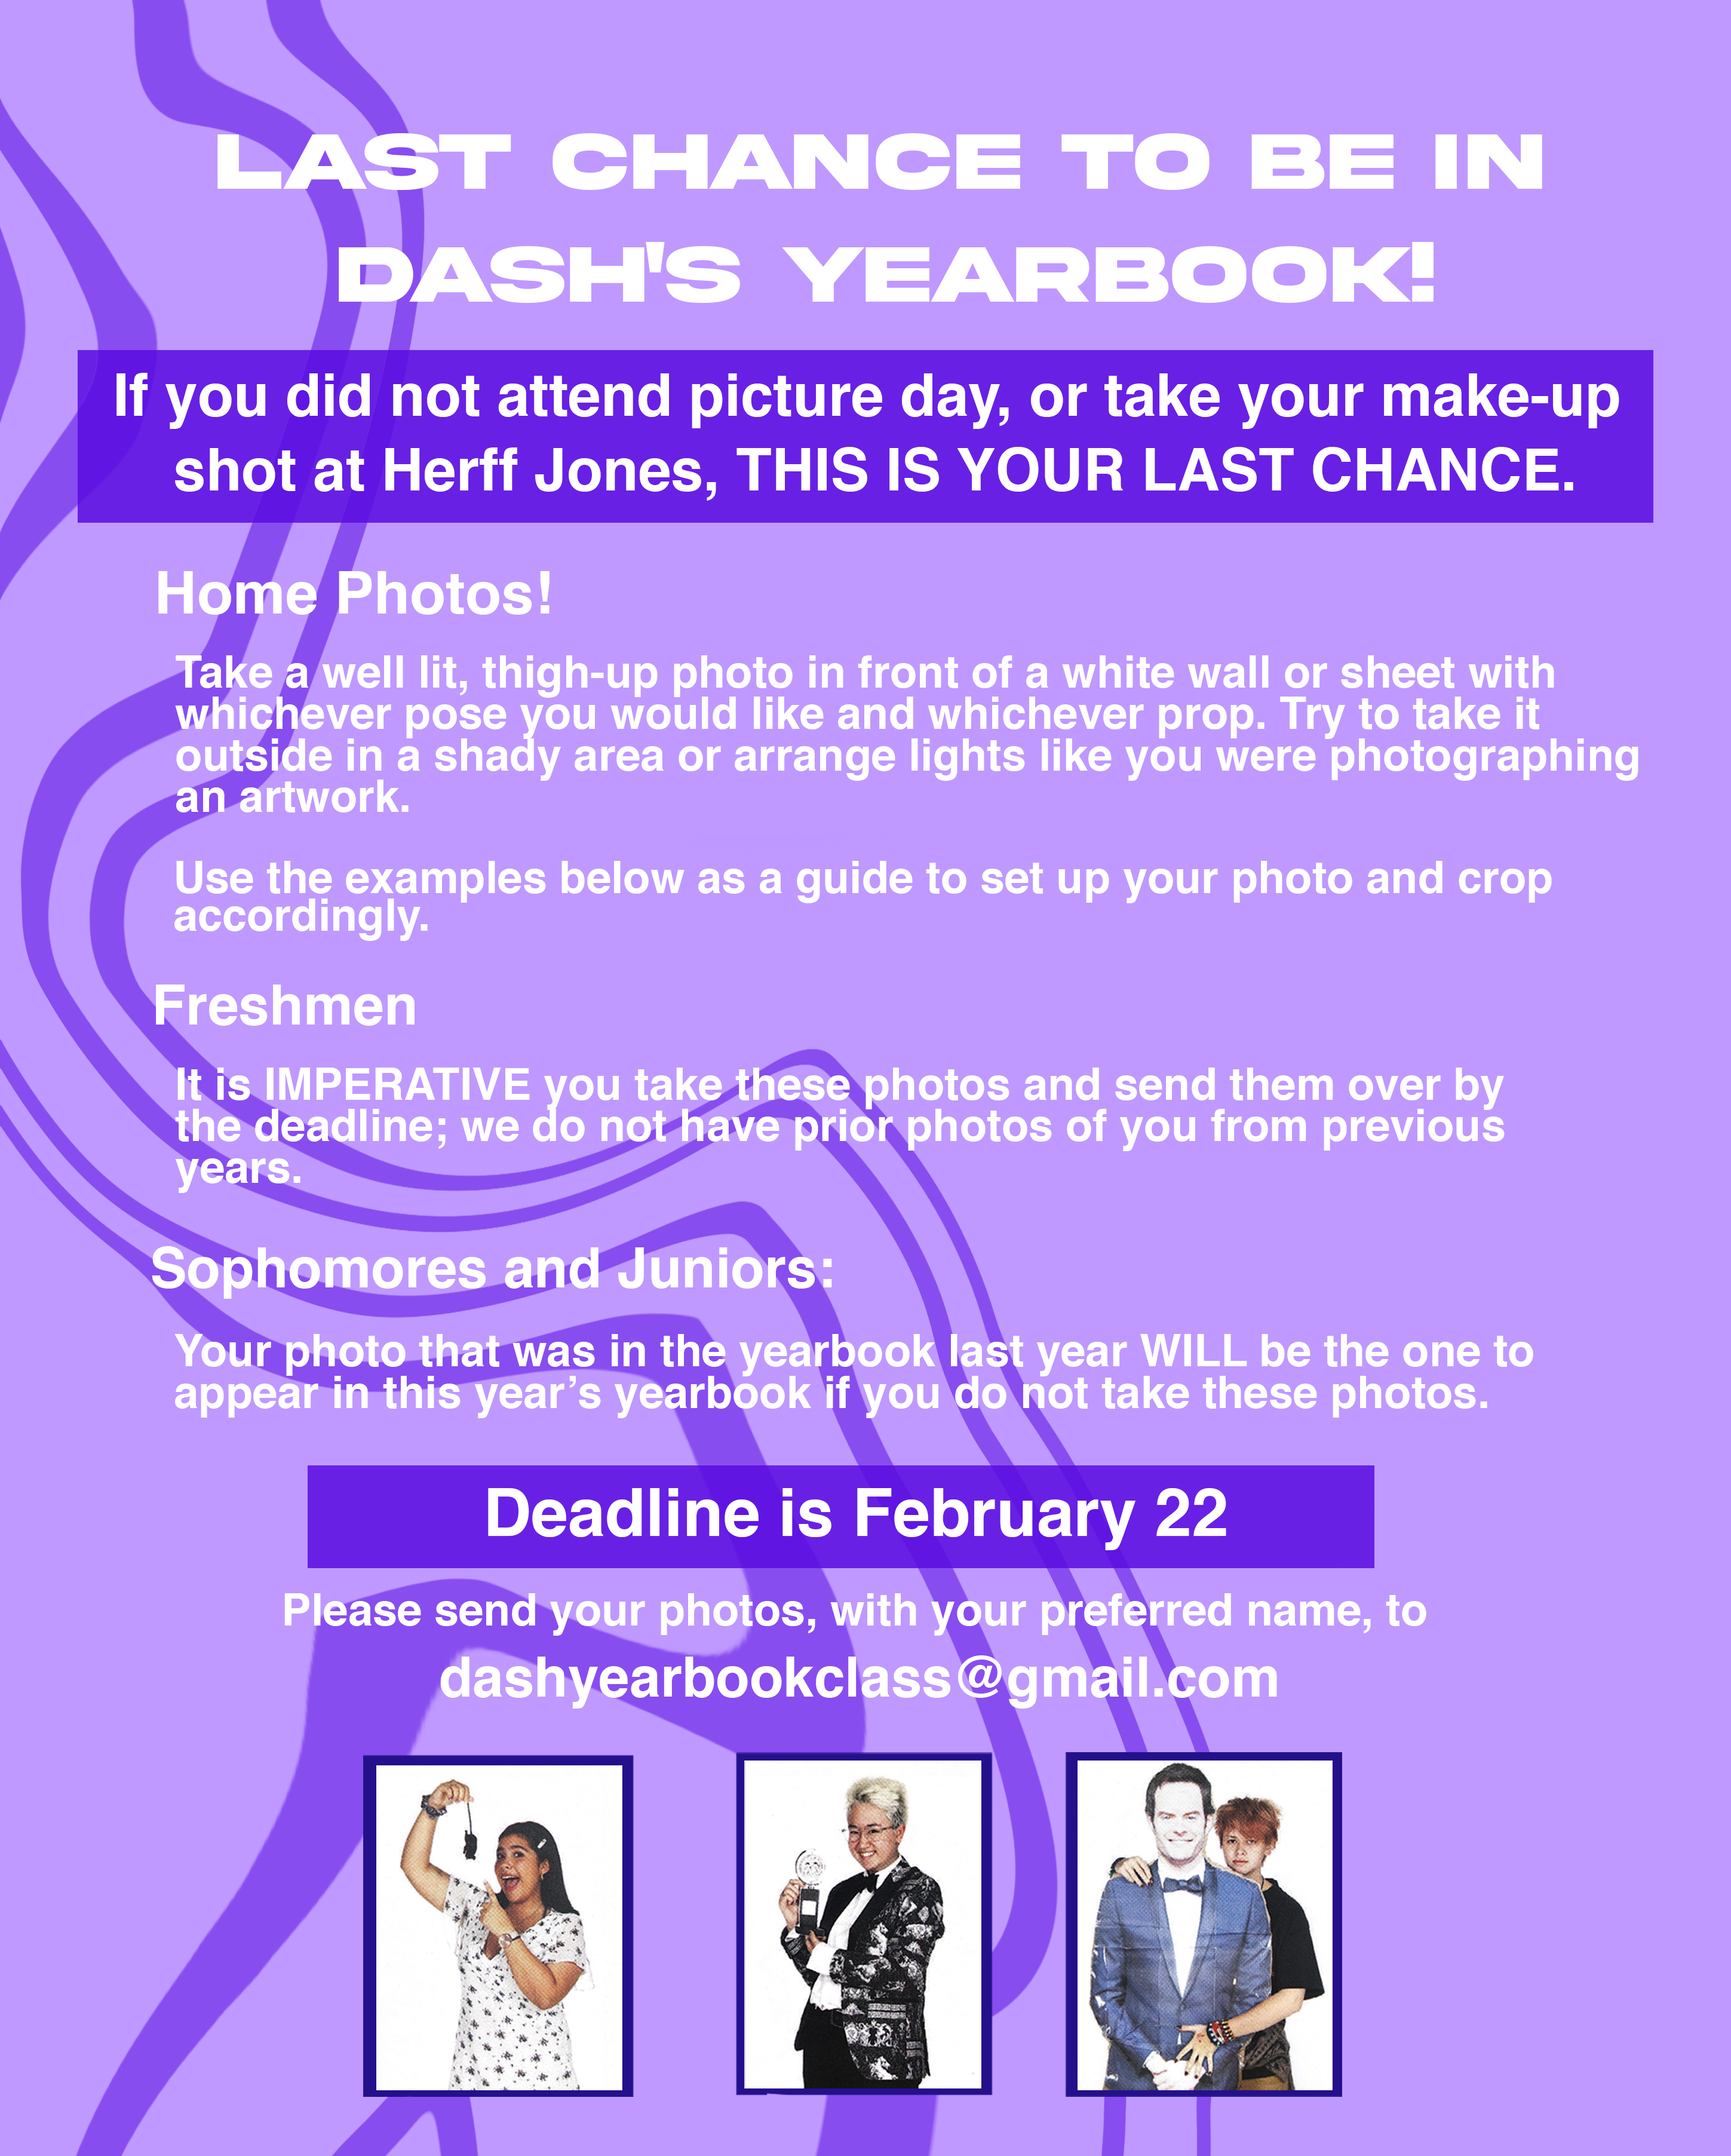 Last chance to be in DASH's yearbook!